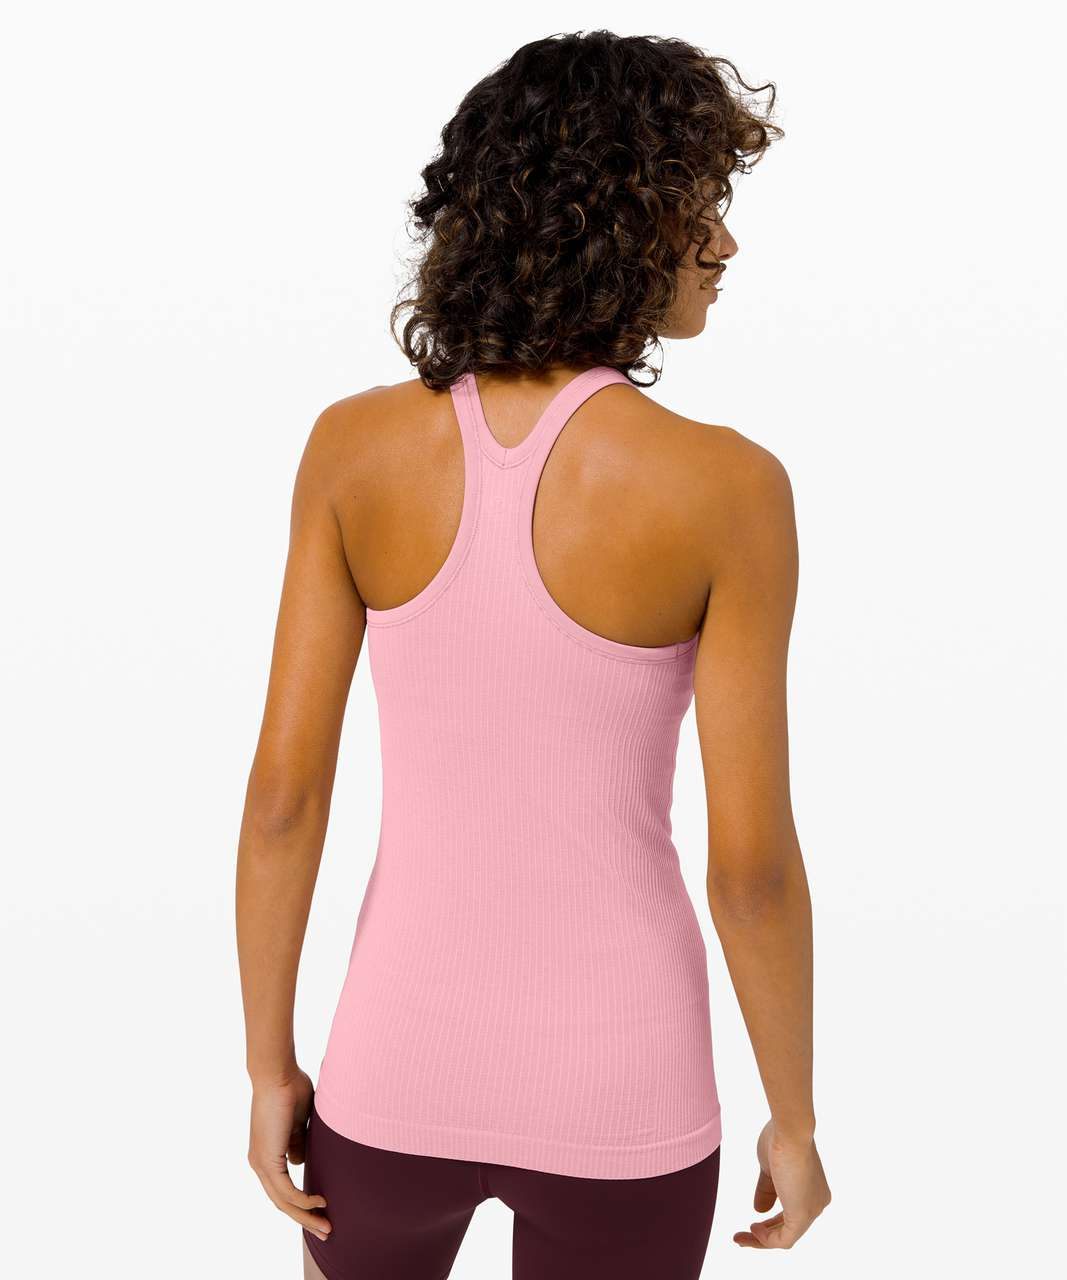 Lululemon Ebb To Street Tank *Light Support For B/C Cup - Pink Taupe